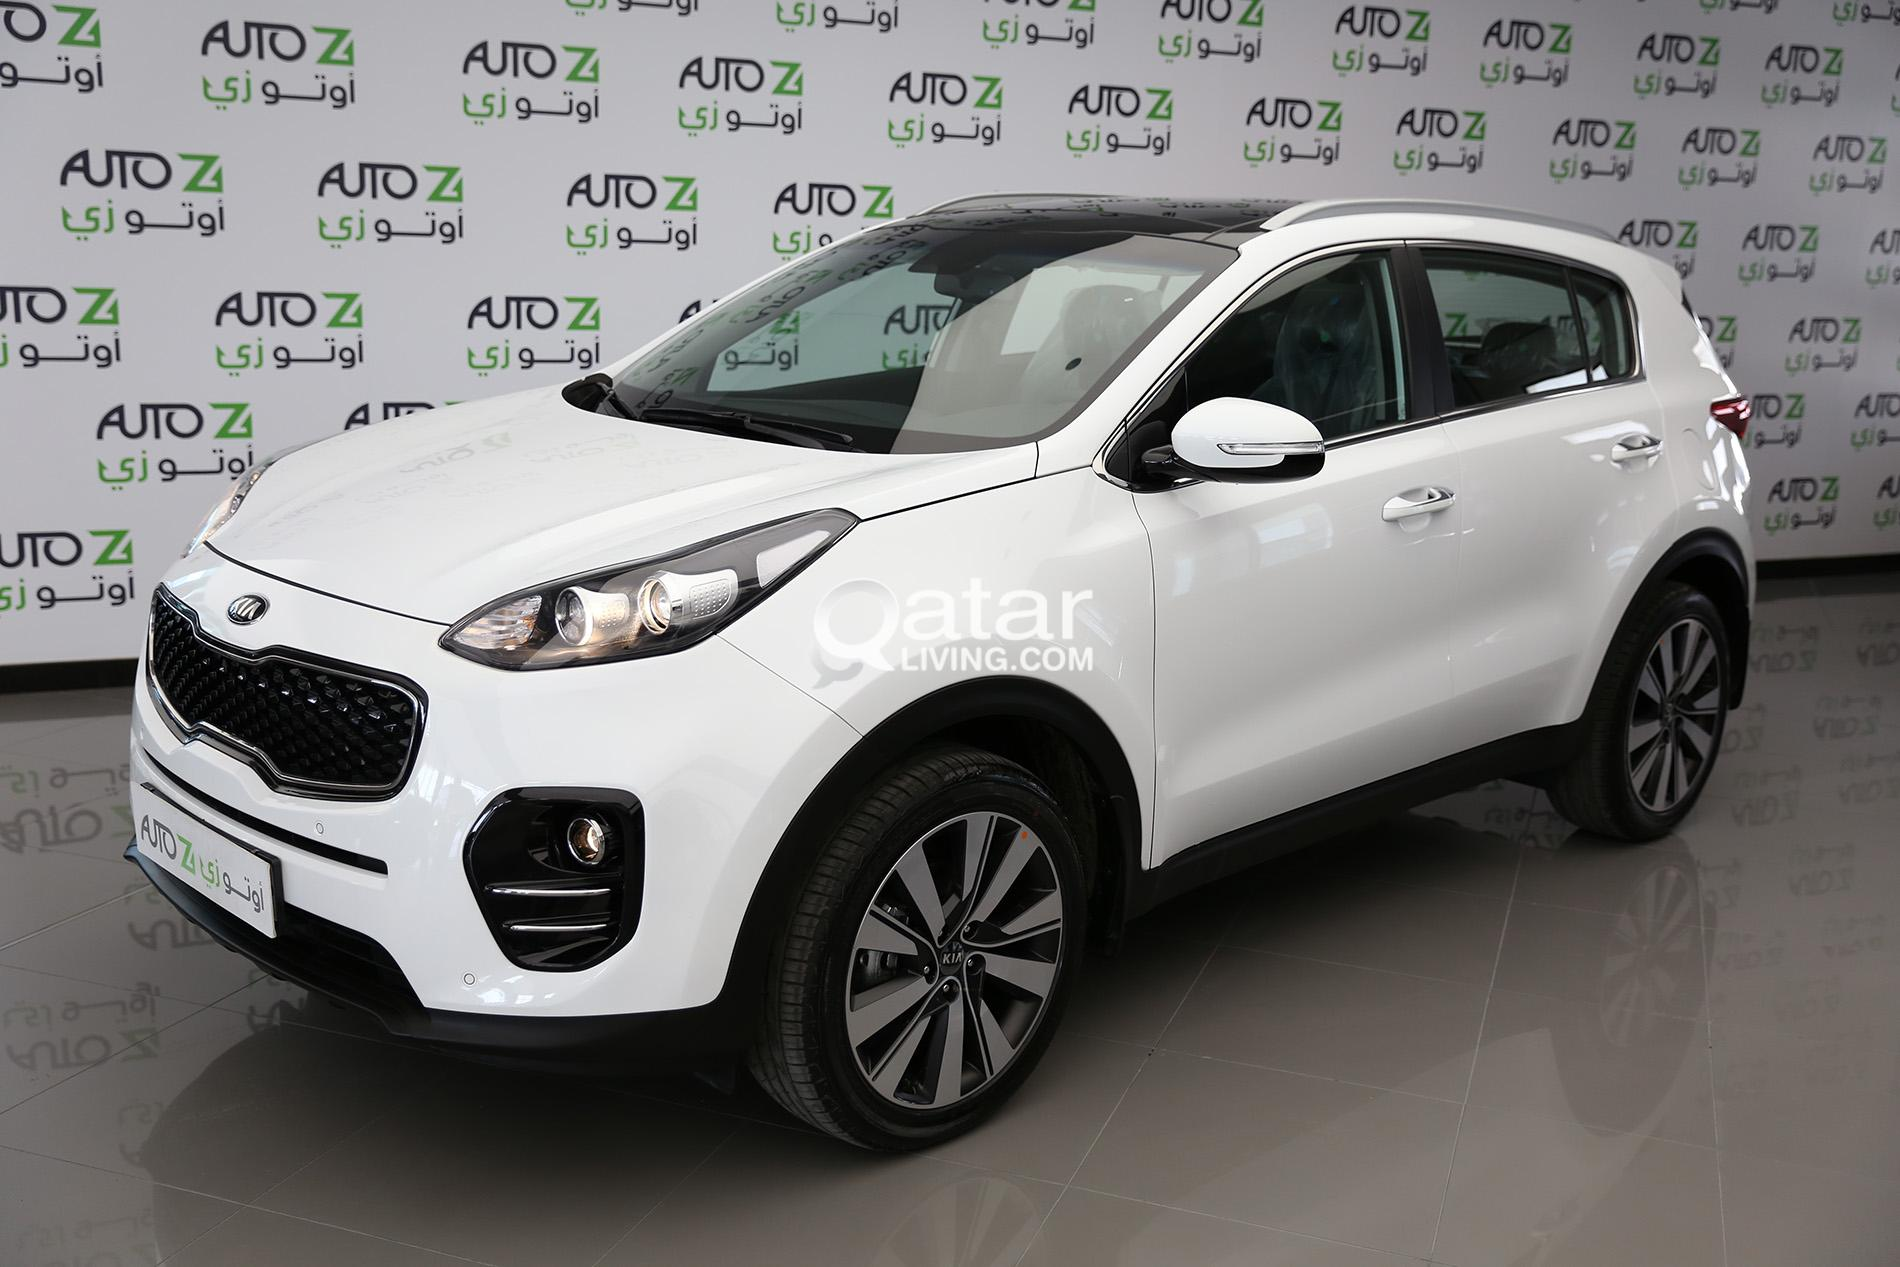 nz sportage kia limited test review drive life car drivelife road